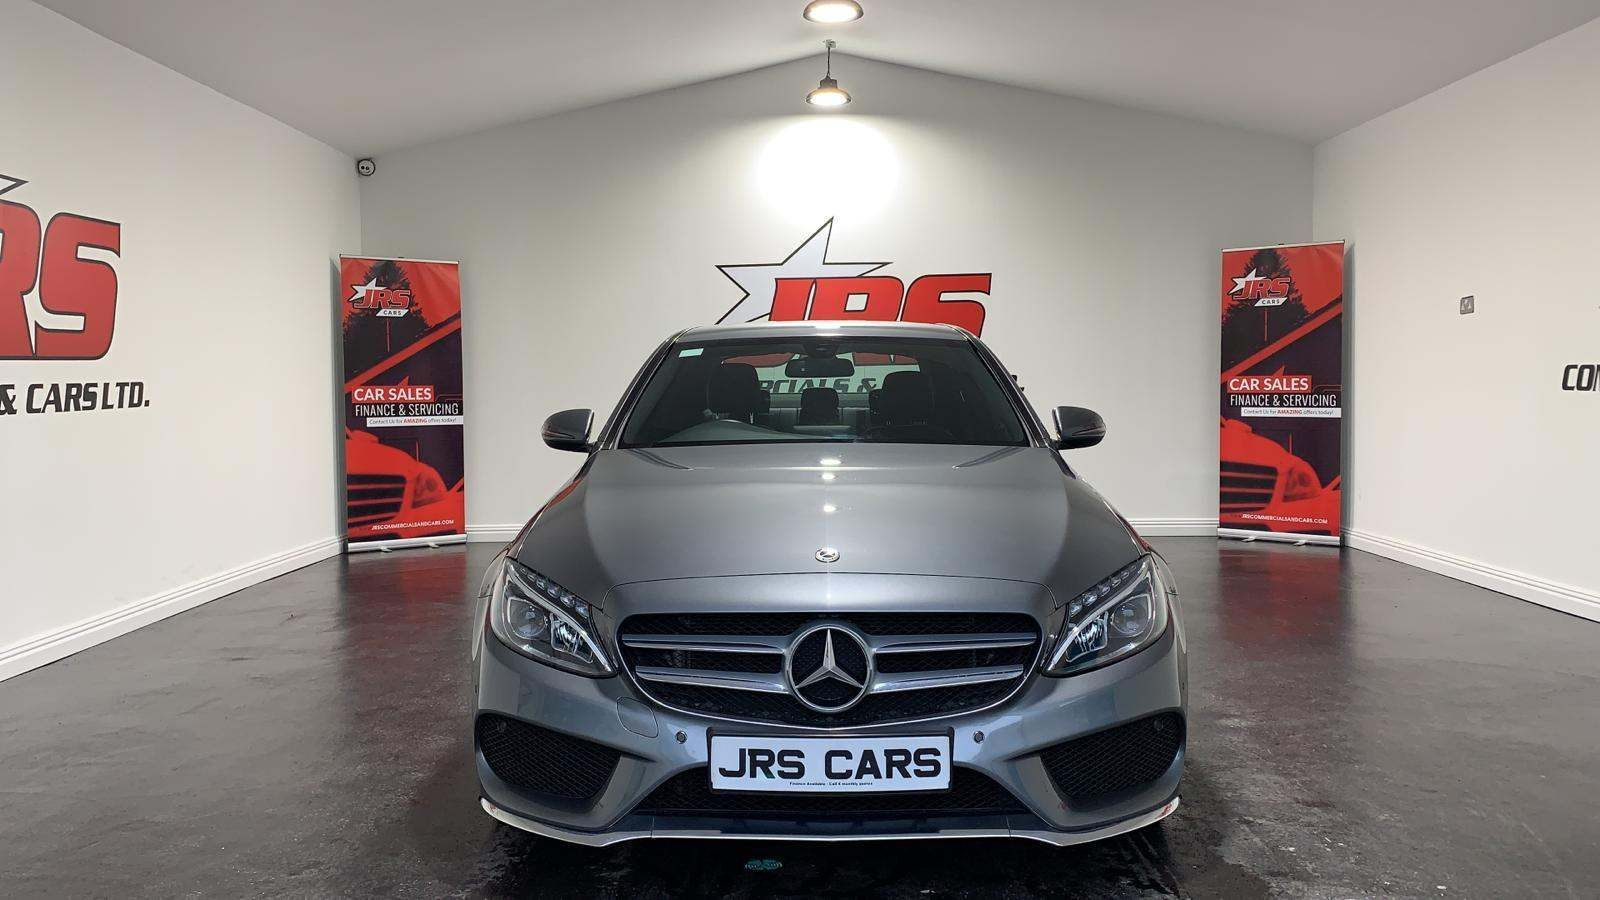 2018 MERCEDES BENZ C Class 2.1 C220d AMG Line G-Tronic+ (s/s) Diesel Automatic Merc Warranty Expires 30/04/21 – J R S Commercials And Cars Dungannon full